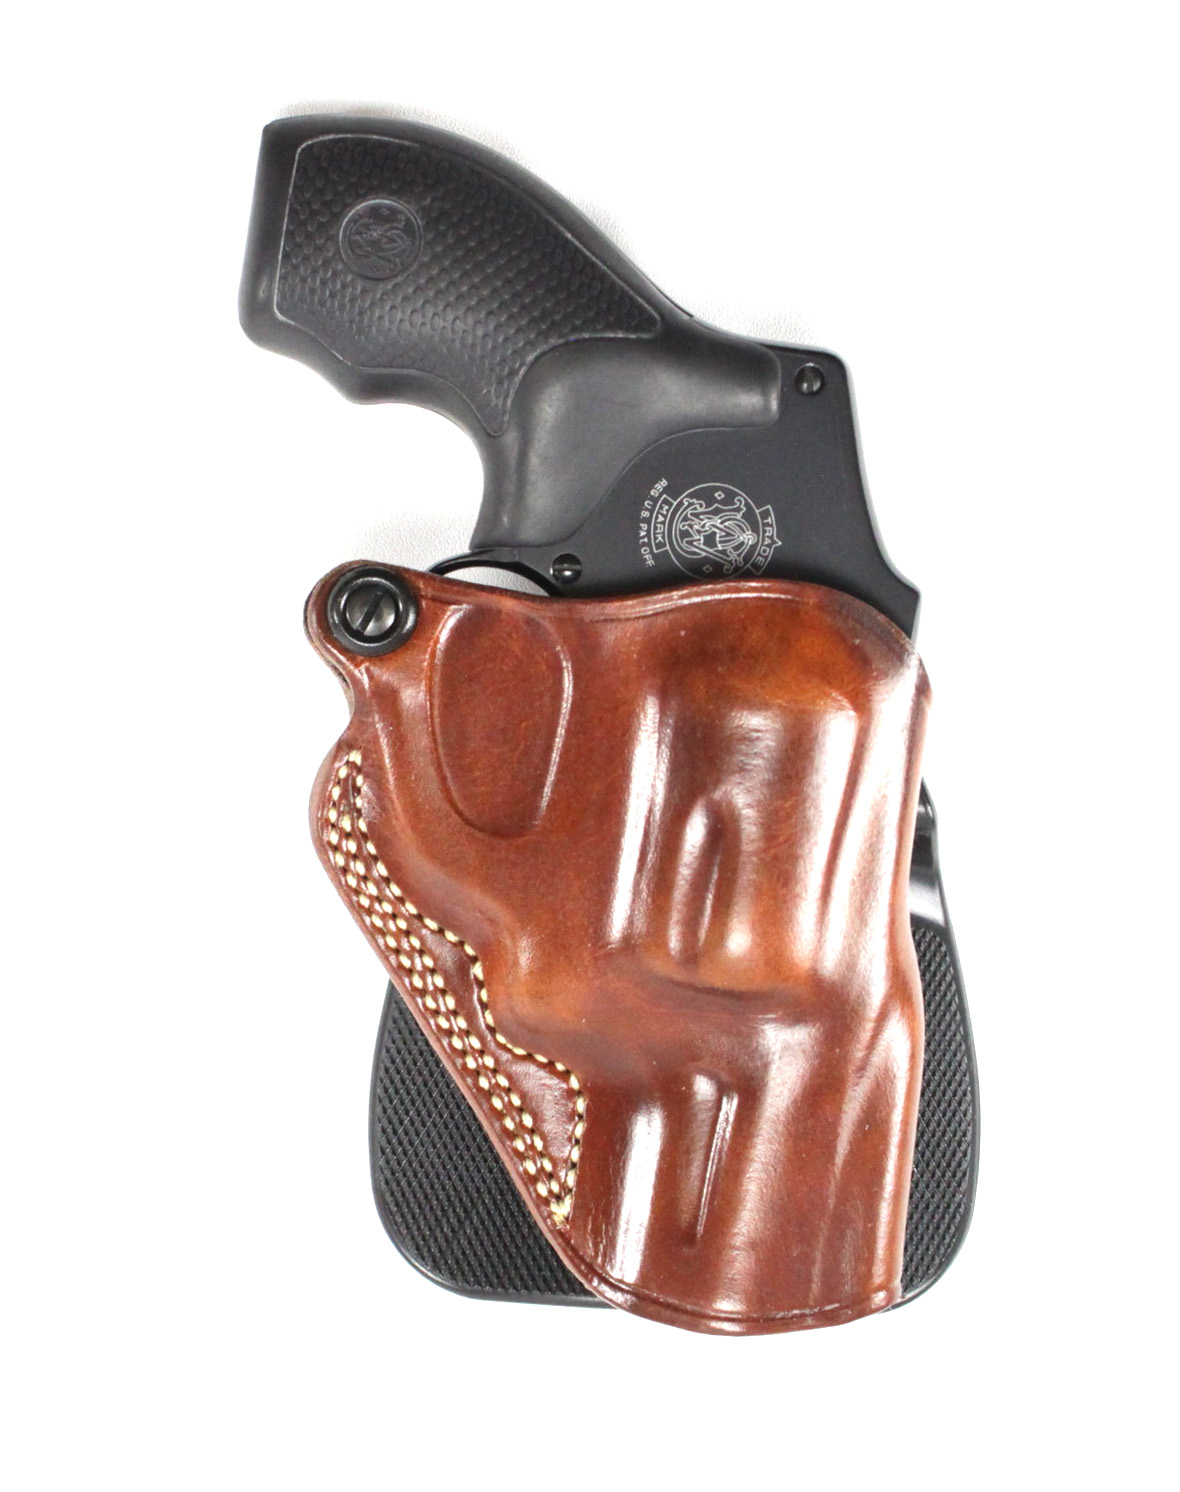 Galco Speed Paddle Holster S&W J-Frame Revolvers Models 442, 642 ...